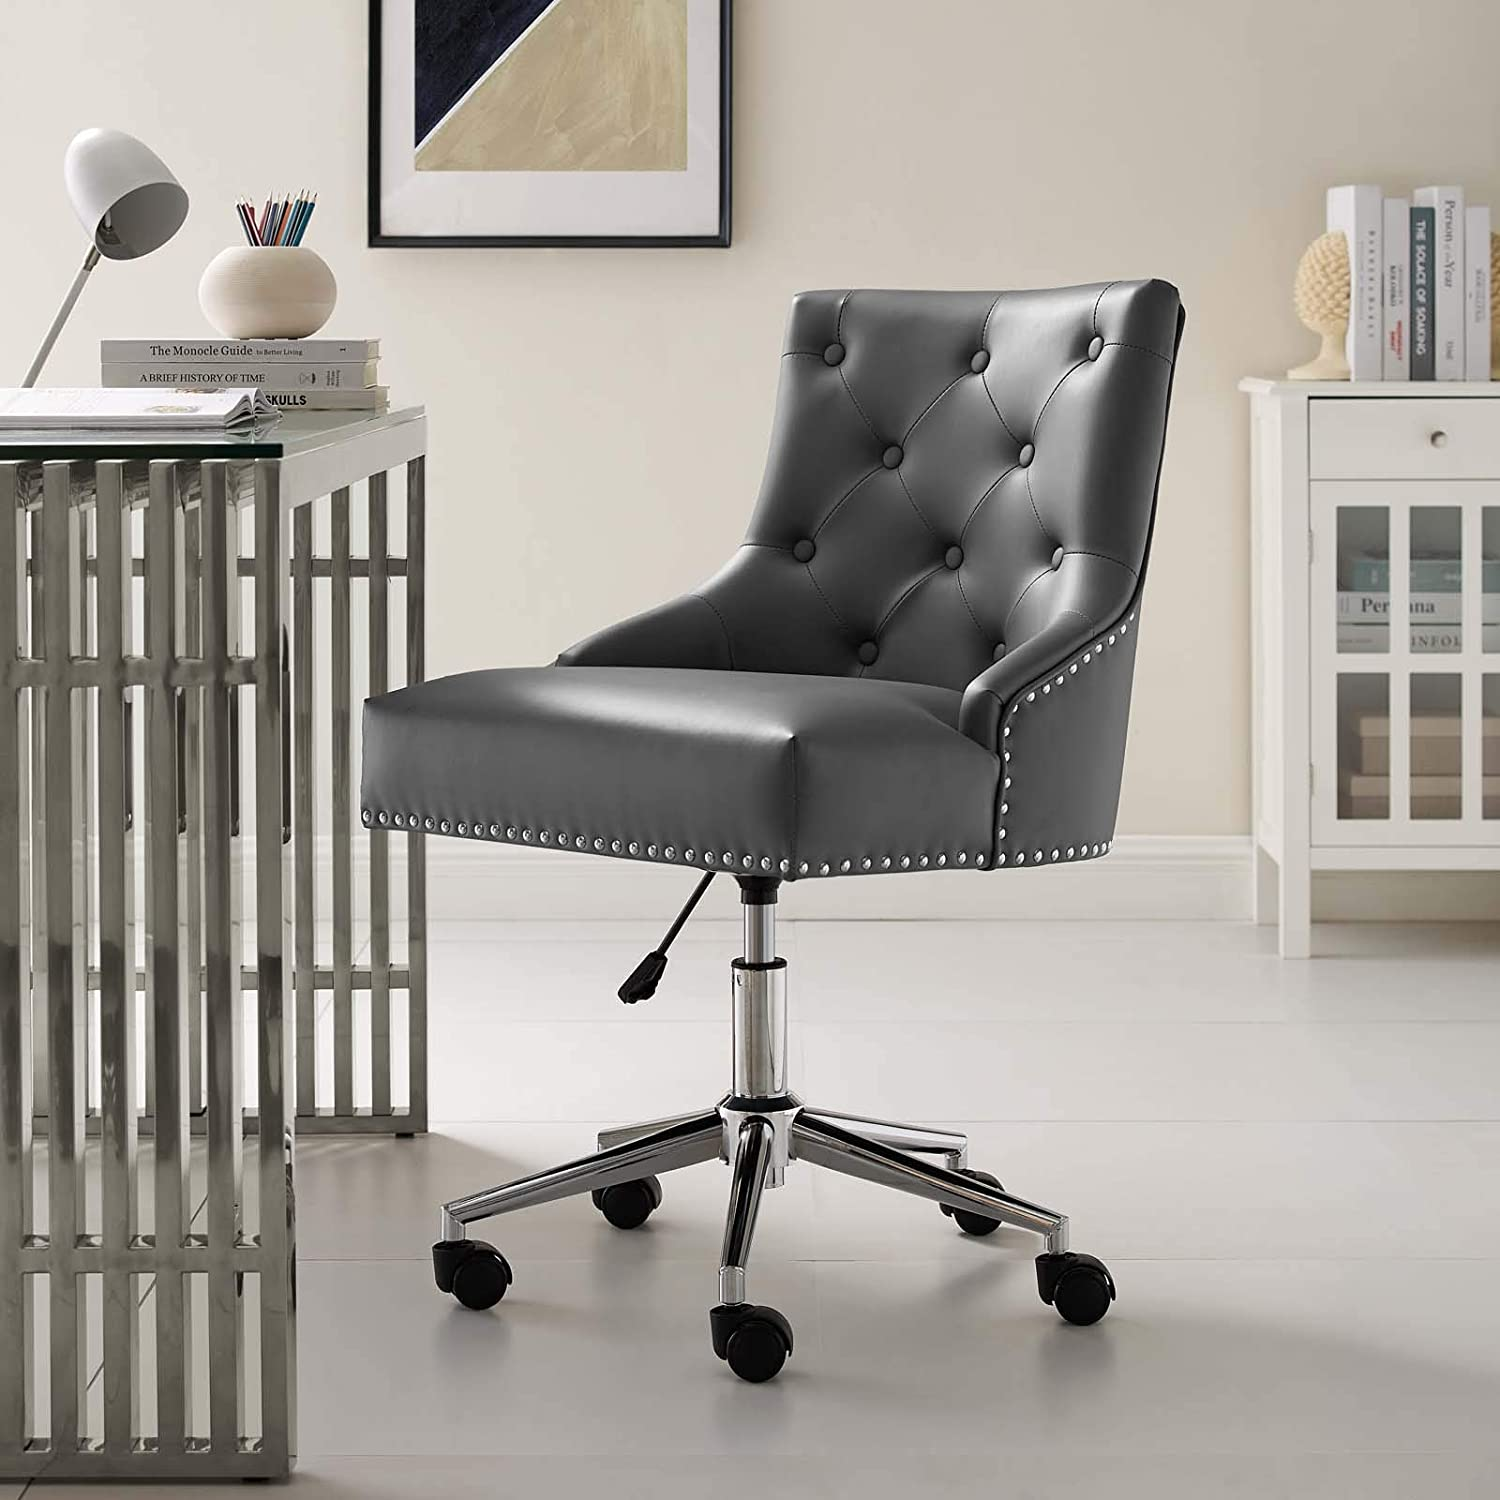 Modway Regent Tufted Button Faux Leather Swivel Office Chair with Nailhead Trim in Gray